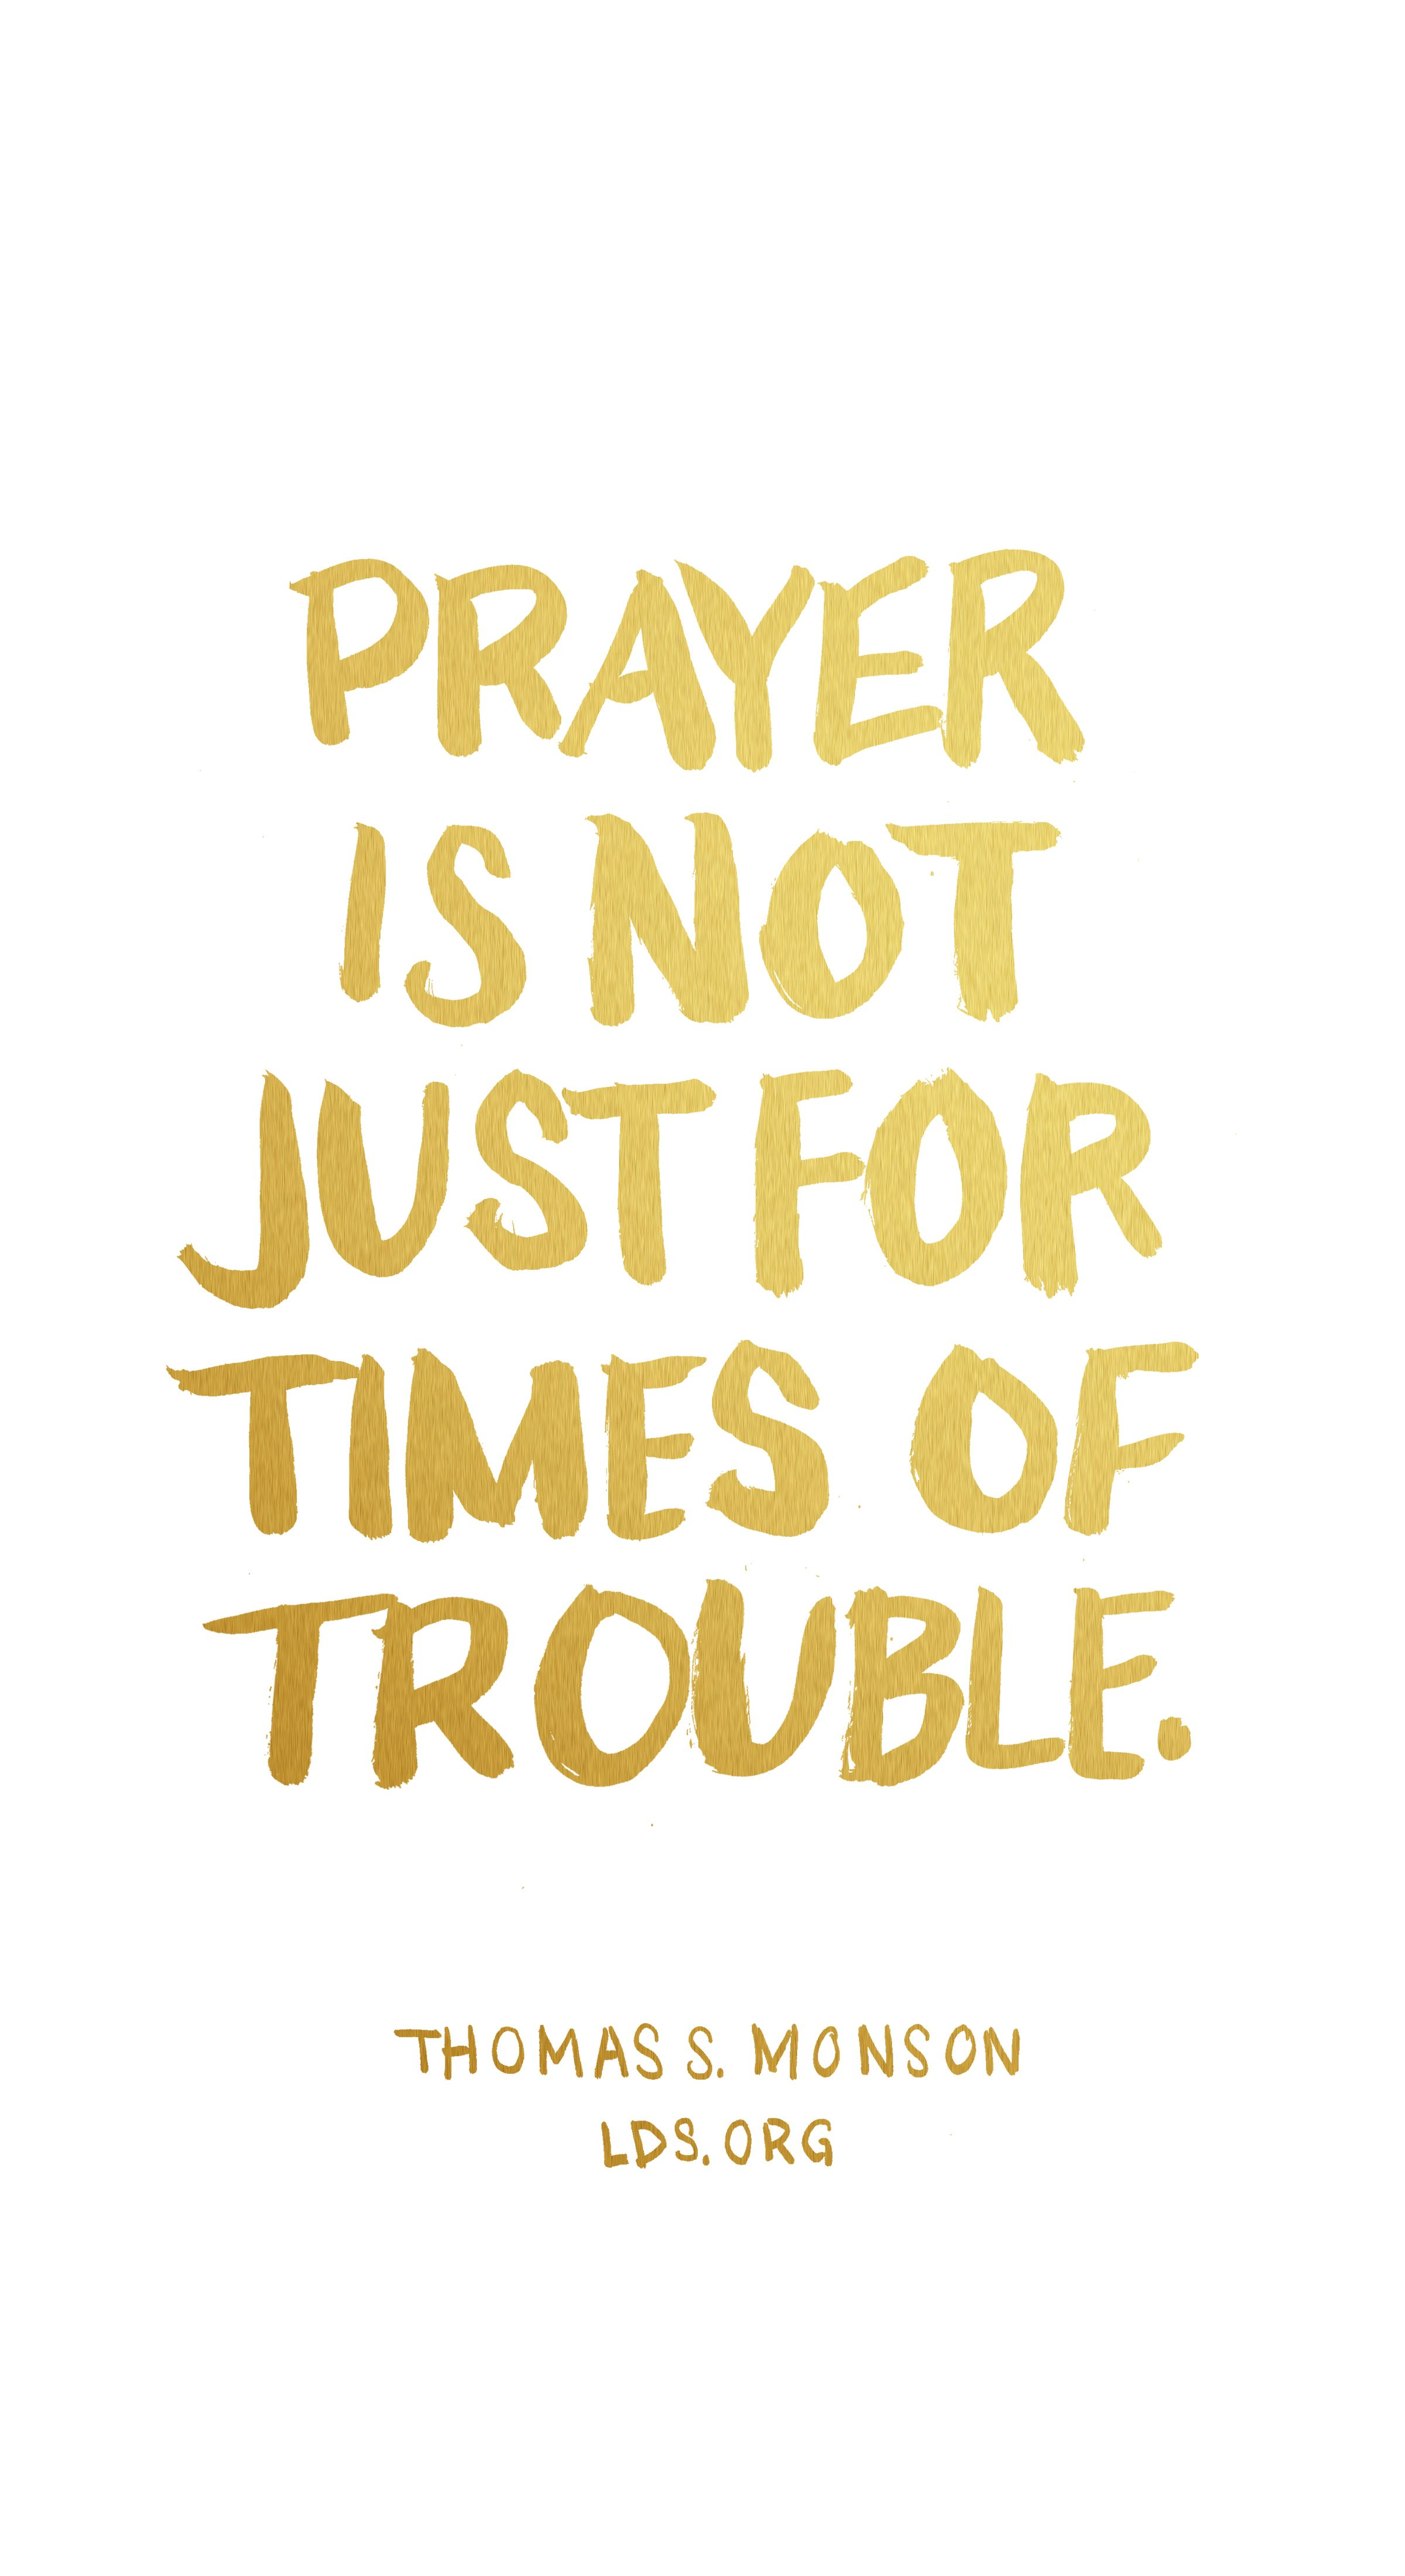 Prayer Is Not Just For Times Of Trouble. U2014Thomas S. Monson #LDS